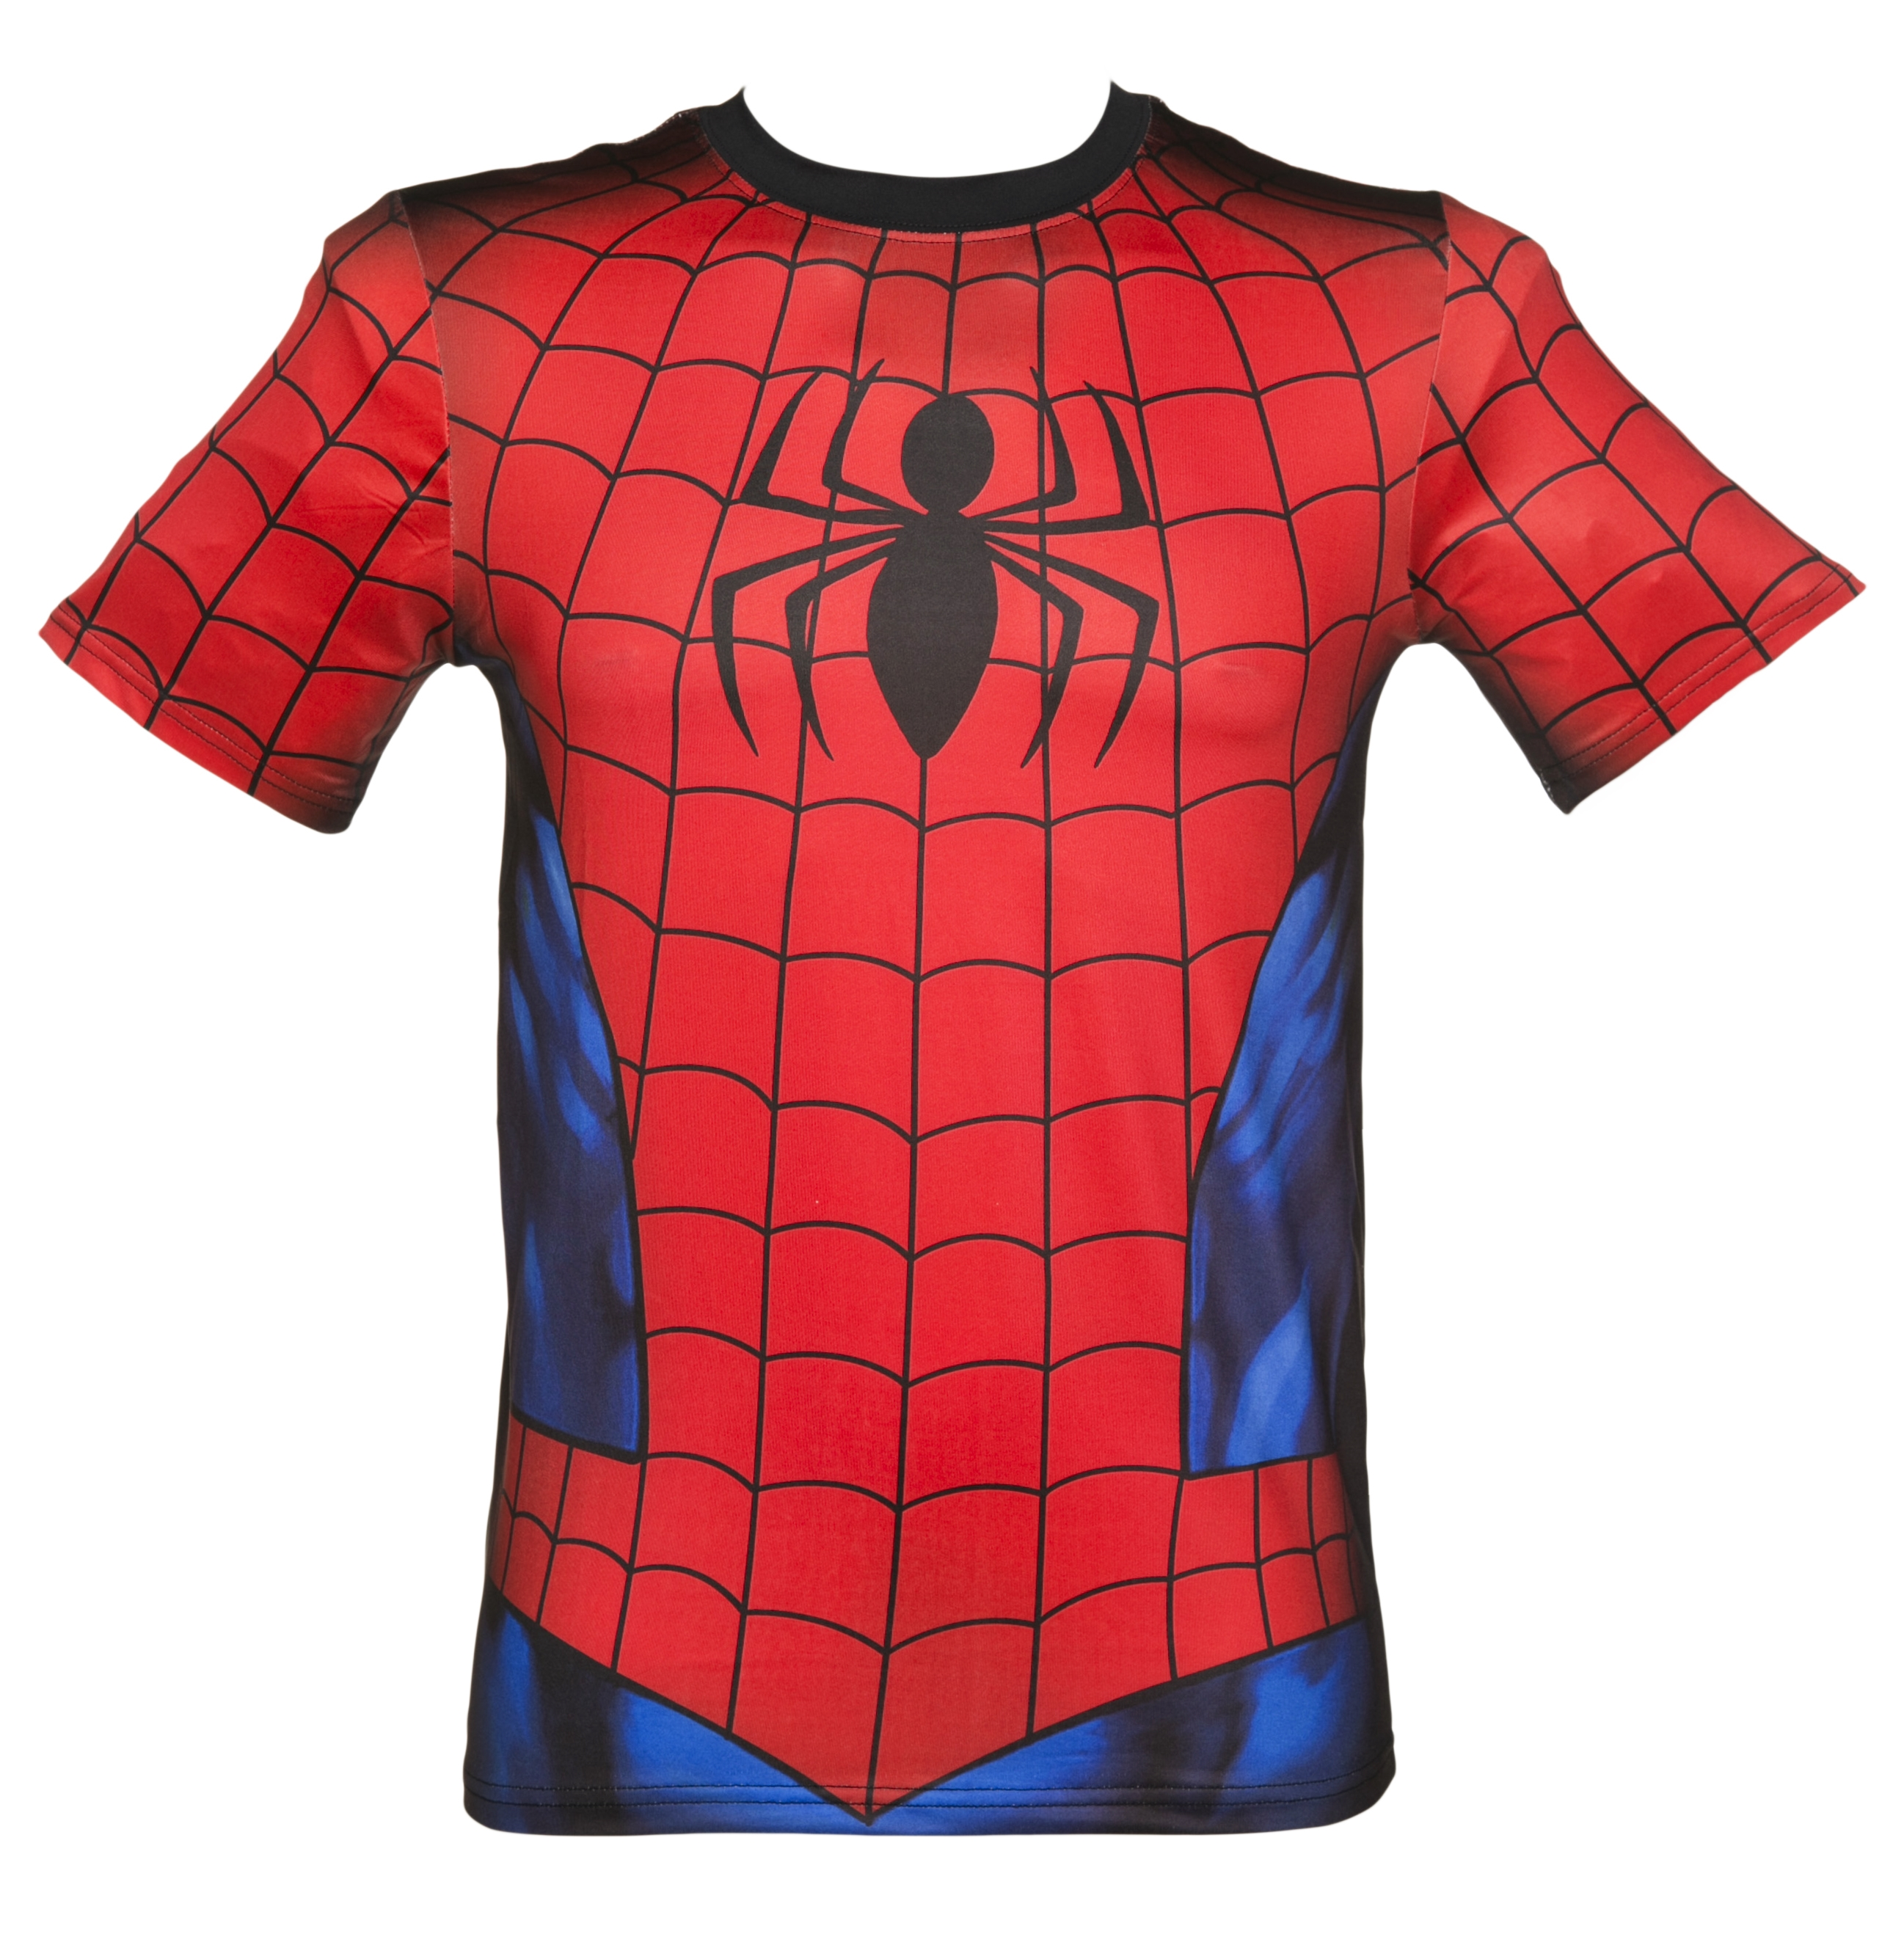 mens marvel spiderman costume t shirt